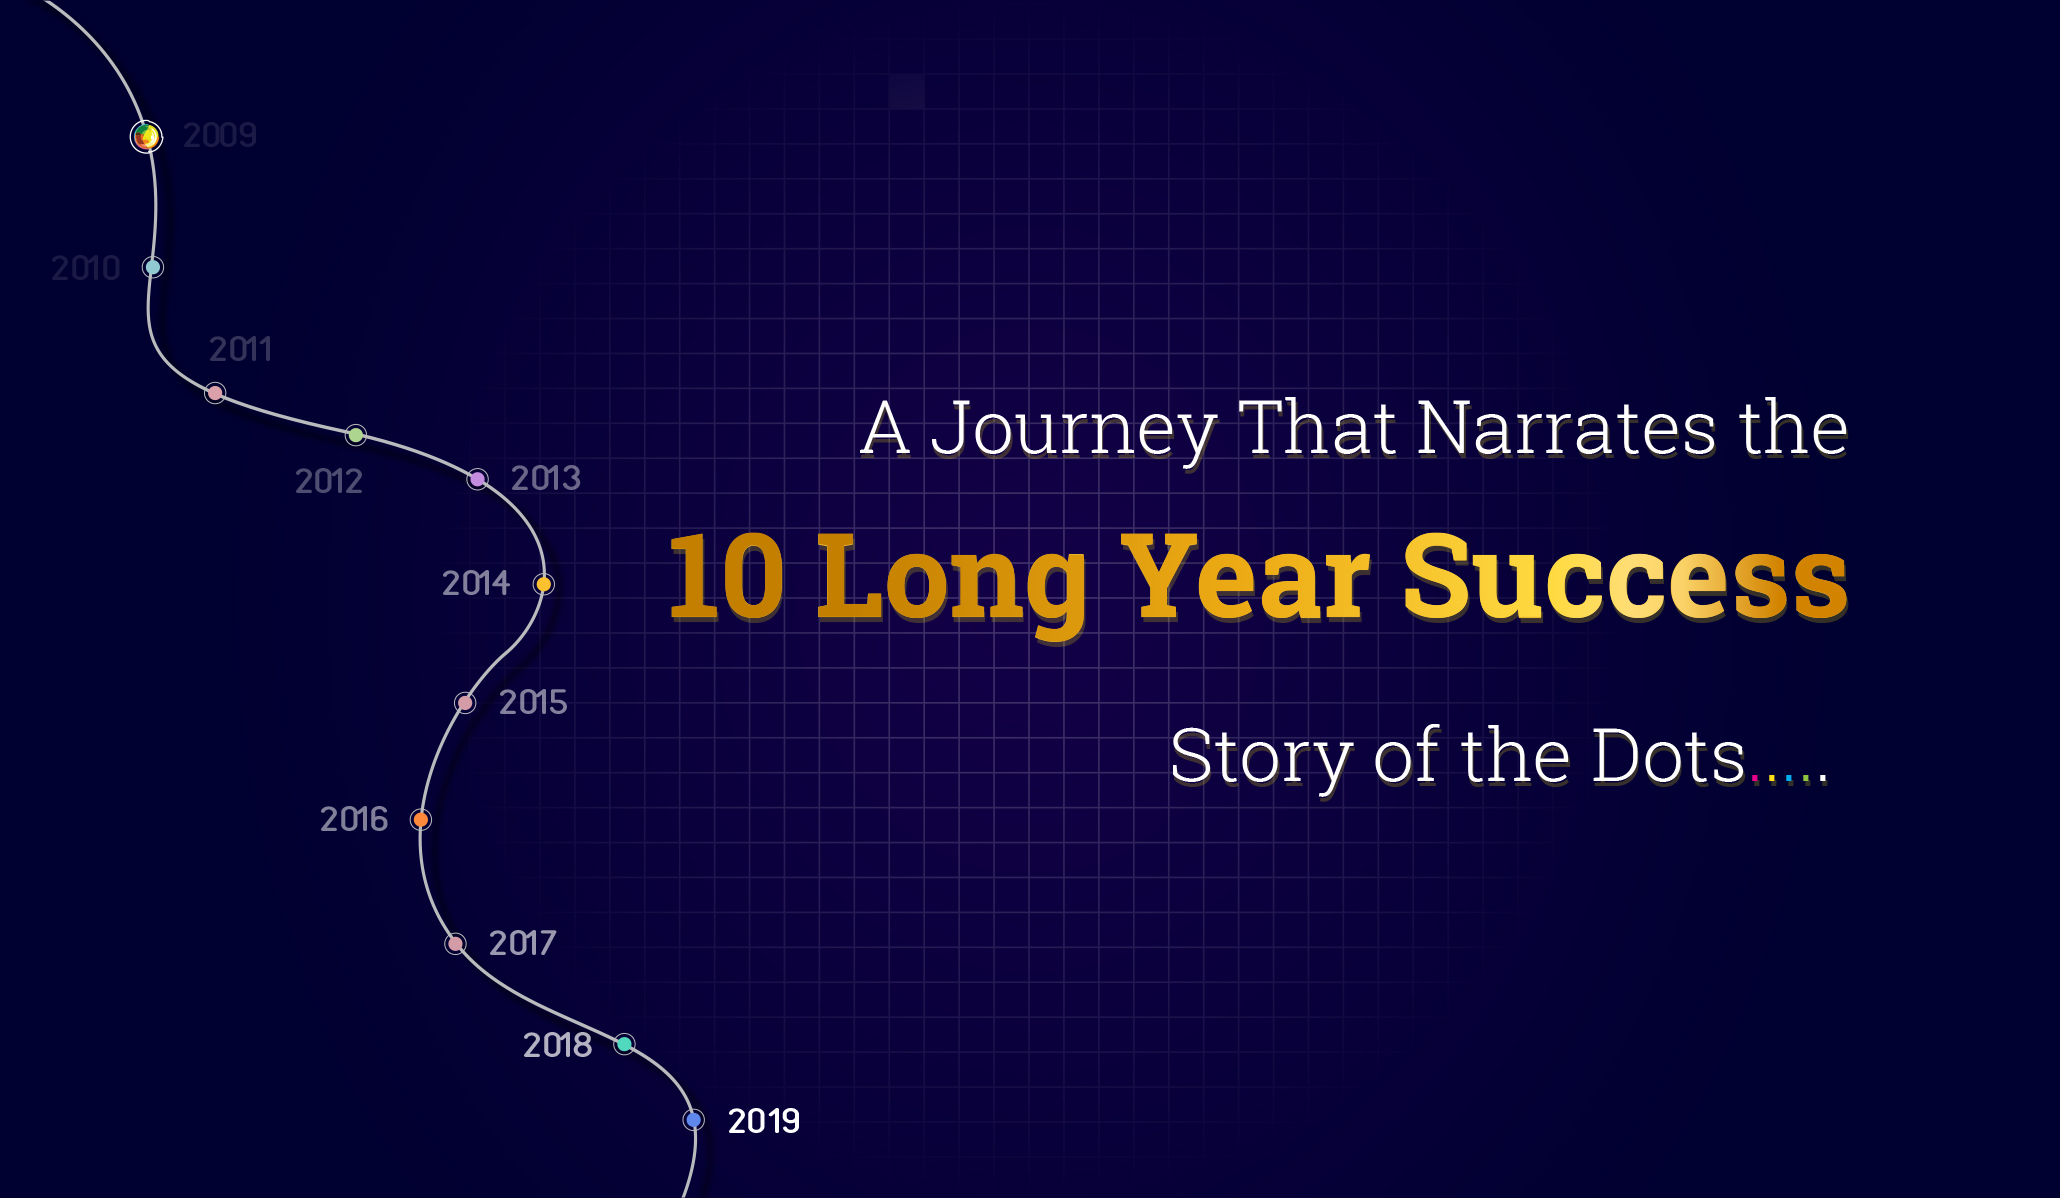 A Journey That Narrates the 10 Long Year Success Story of the Dots…